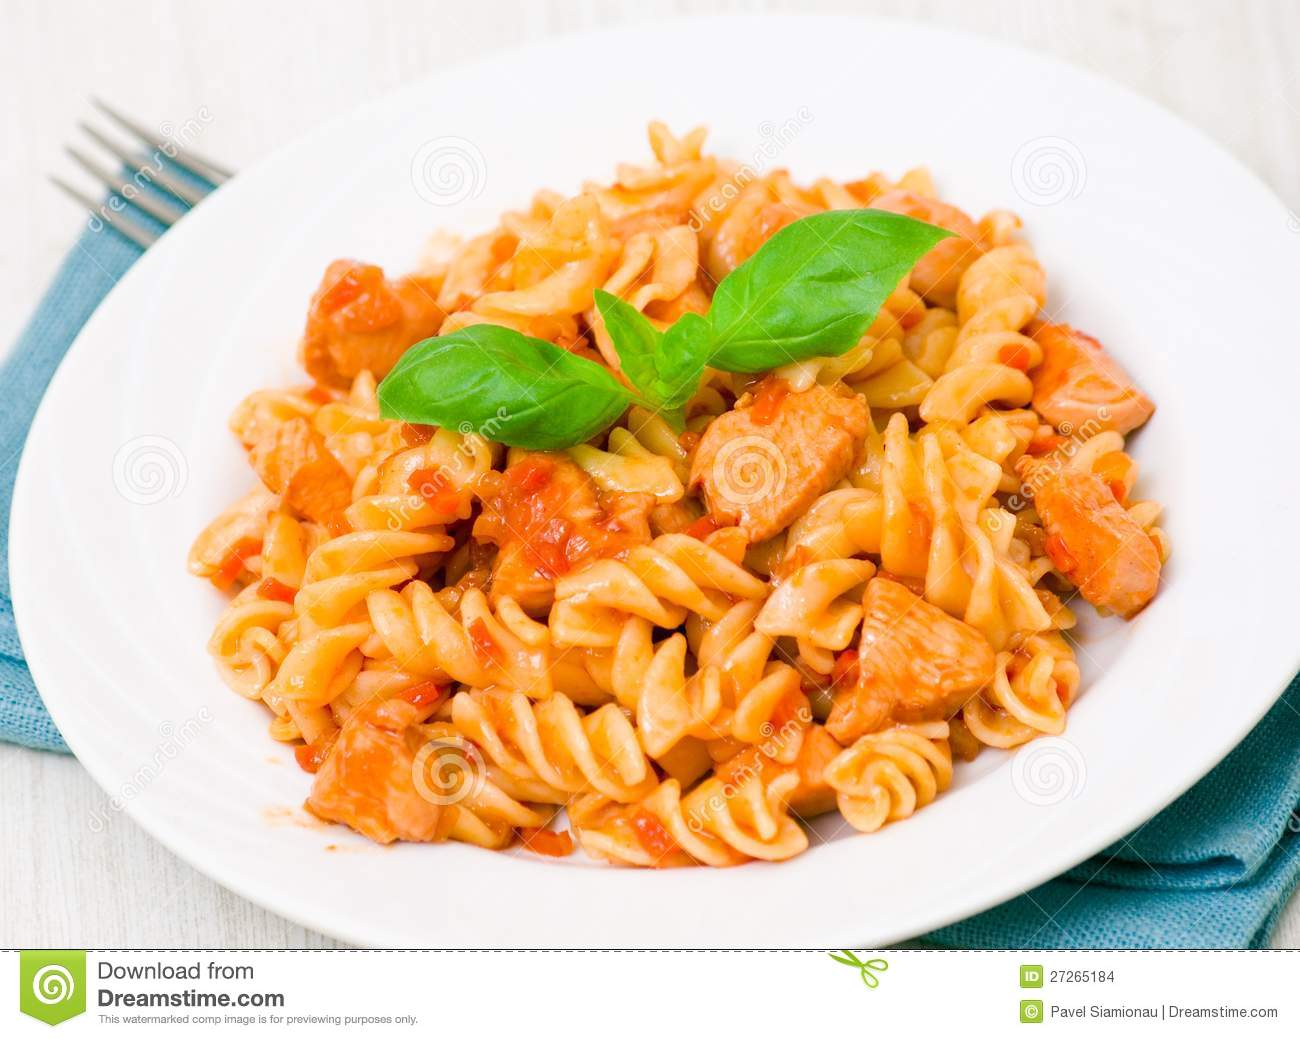 Fusilli Pasta With Chicken Breast In Tomato Sauce Stock Images - Image ...